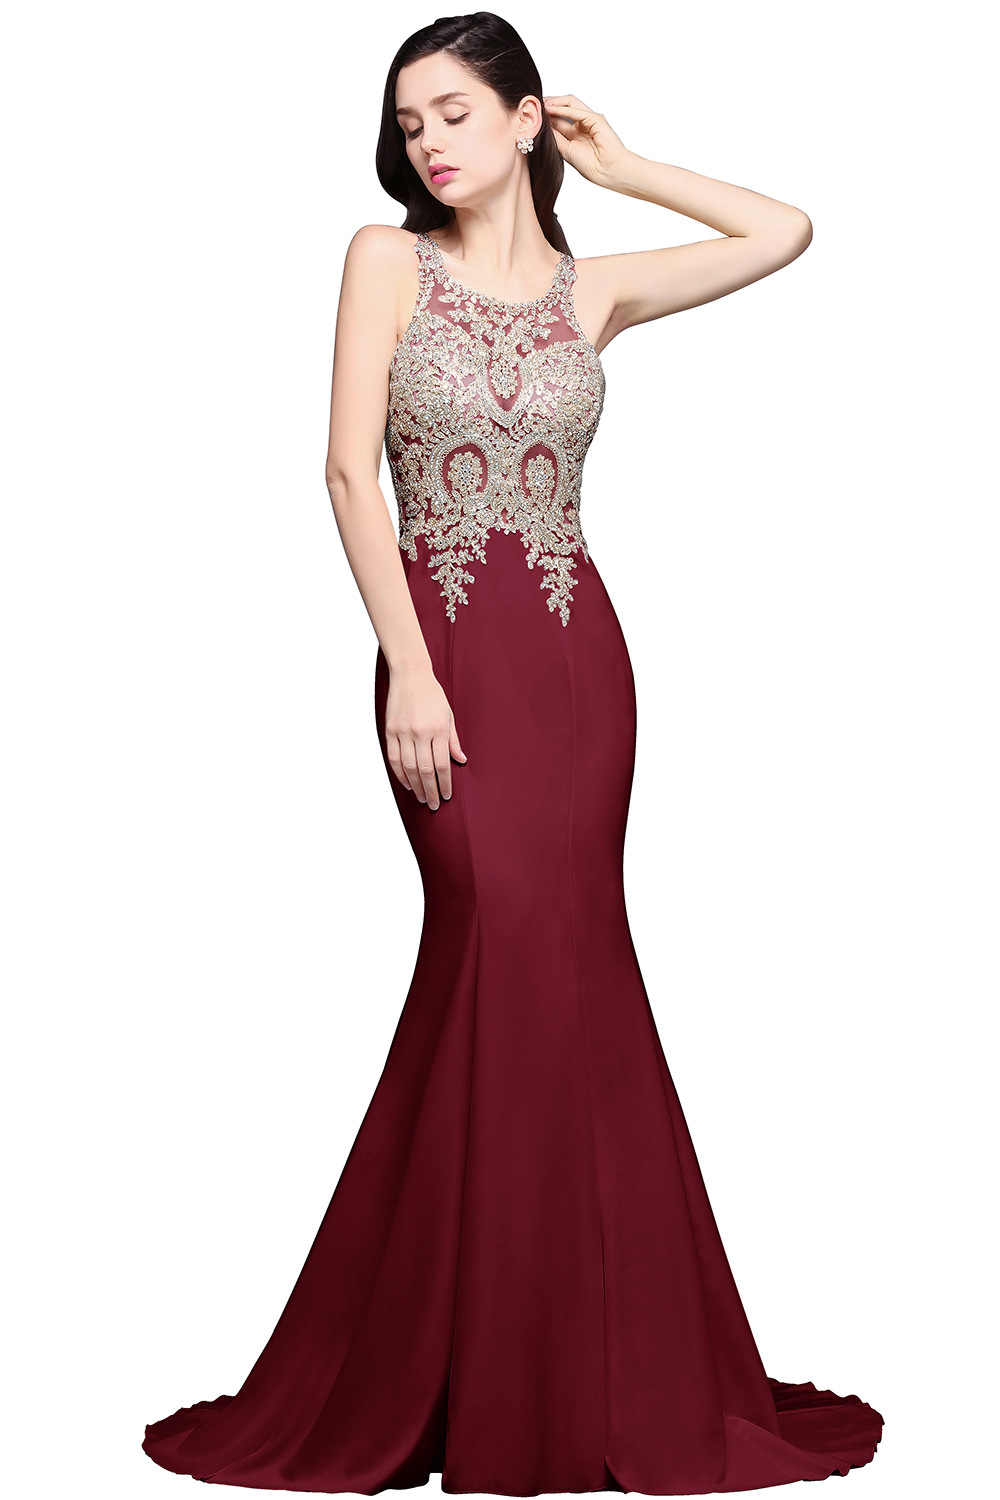 c51d8044003fe vestido de festa Illusion Crew Neck White Mermaid Long Evening Dresses 2017  Lace Applique Beaded Formal Party Prom Dresses